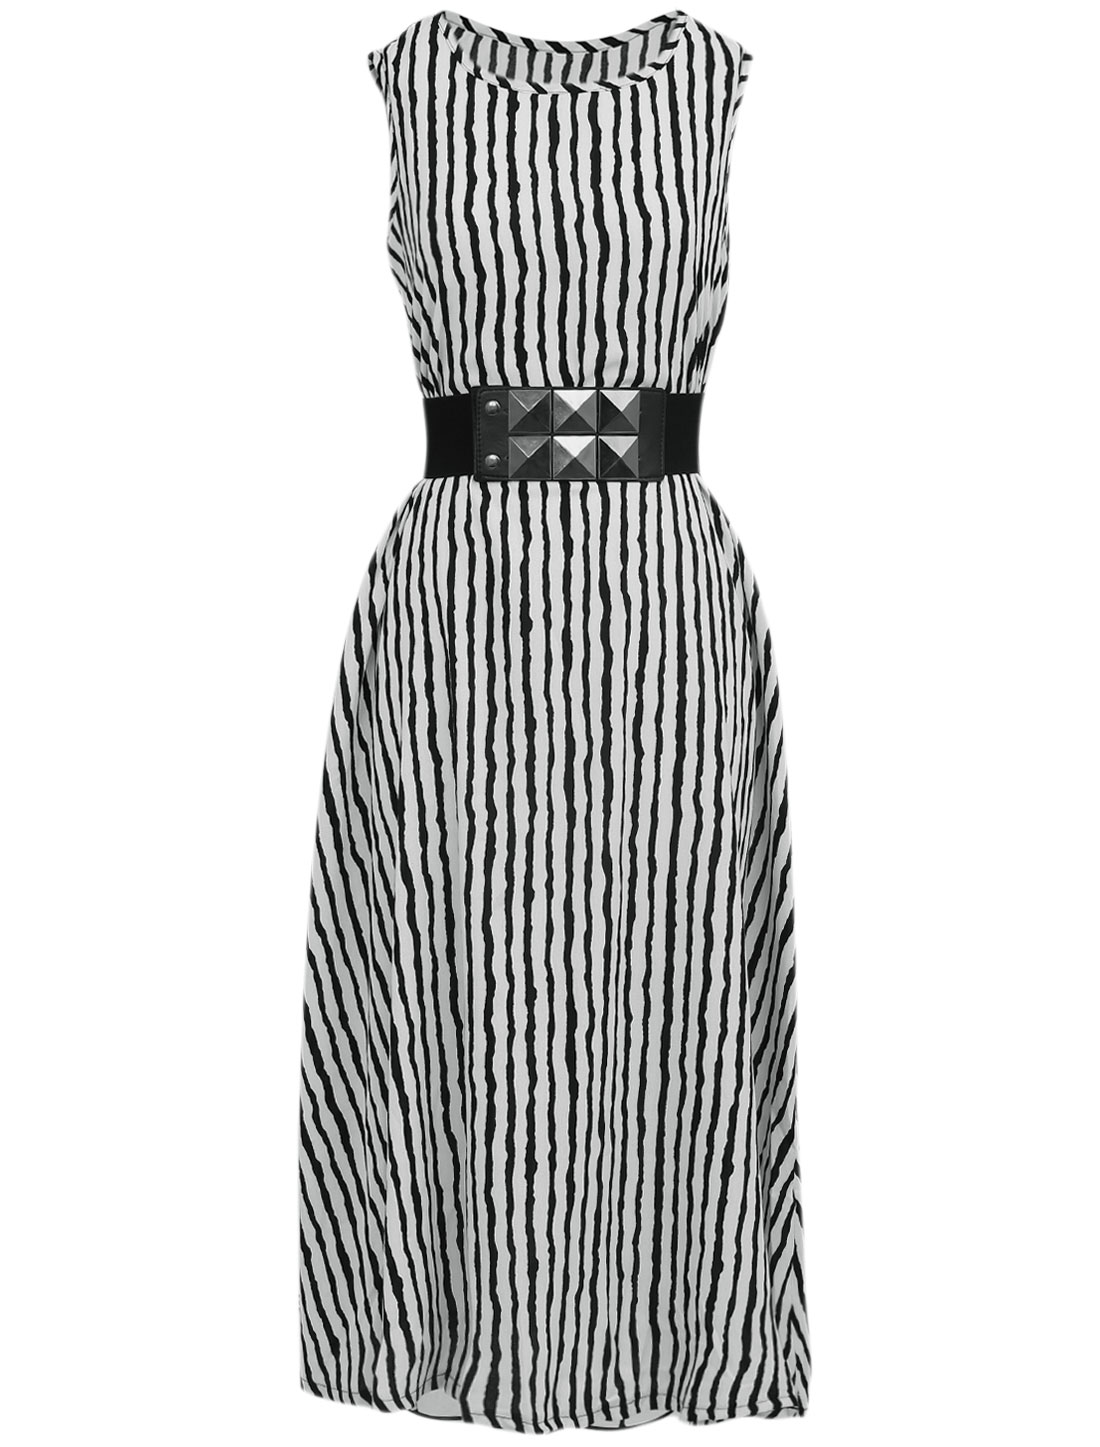 Lady Casual Sleeveless Stripes Mid Calf Unlined Dress w Belt Black White M